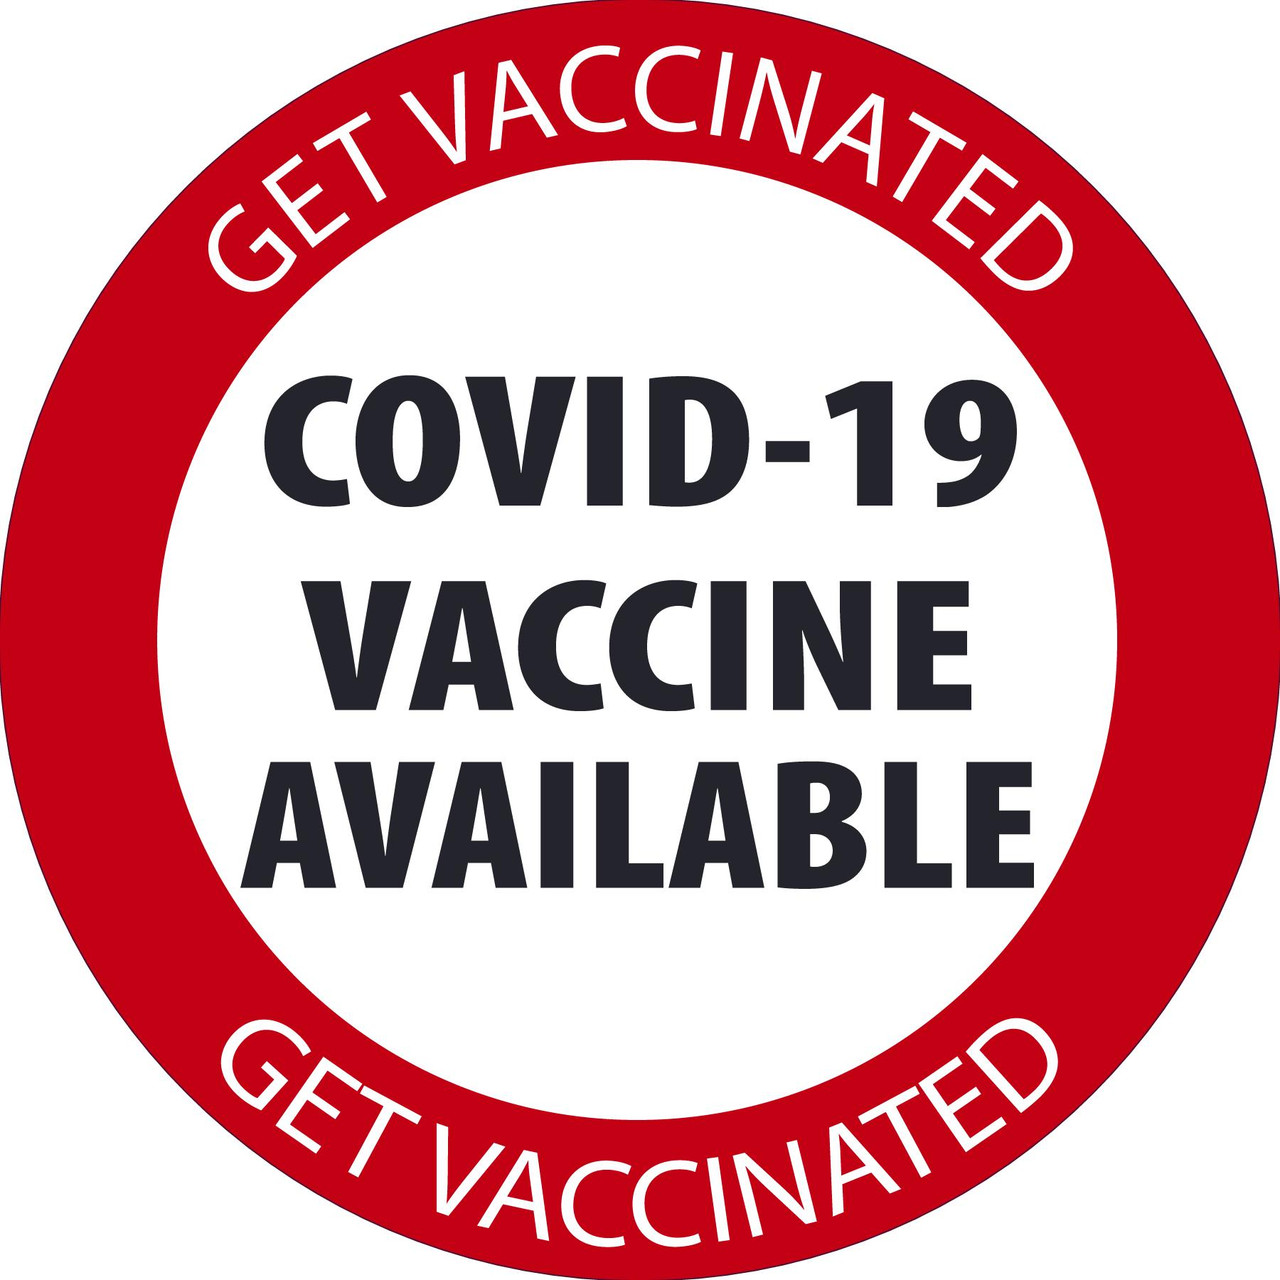 """Window Decal, Covid-19 Vaccinations Available, 6"""" x 6"""", Pressure-sensitive Adhesive, 5/pack"""